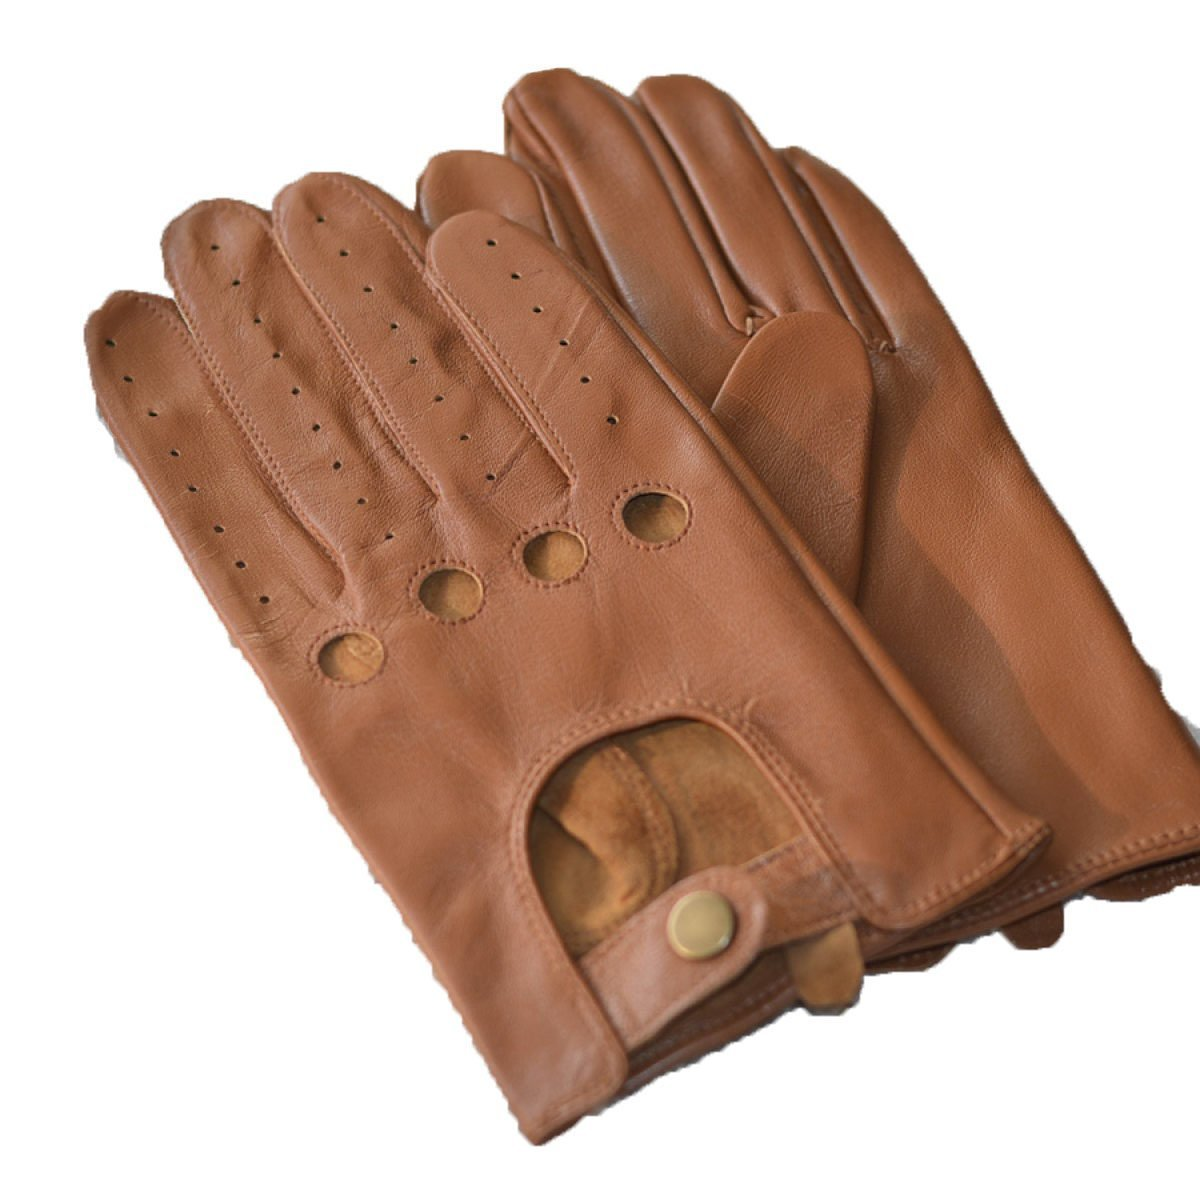 HOMEE Men'S Leather Drives Gloves Thin Repair Design Leakage Four Seasons Available,Brown,Medium